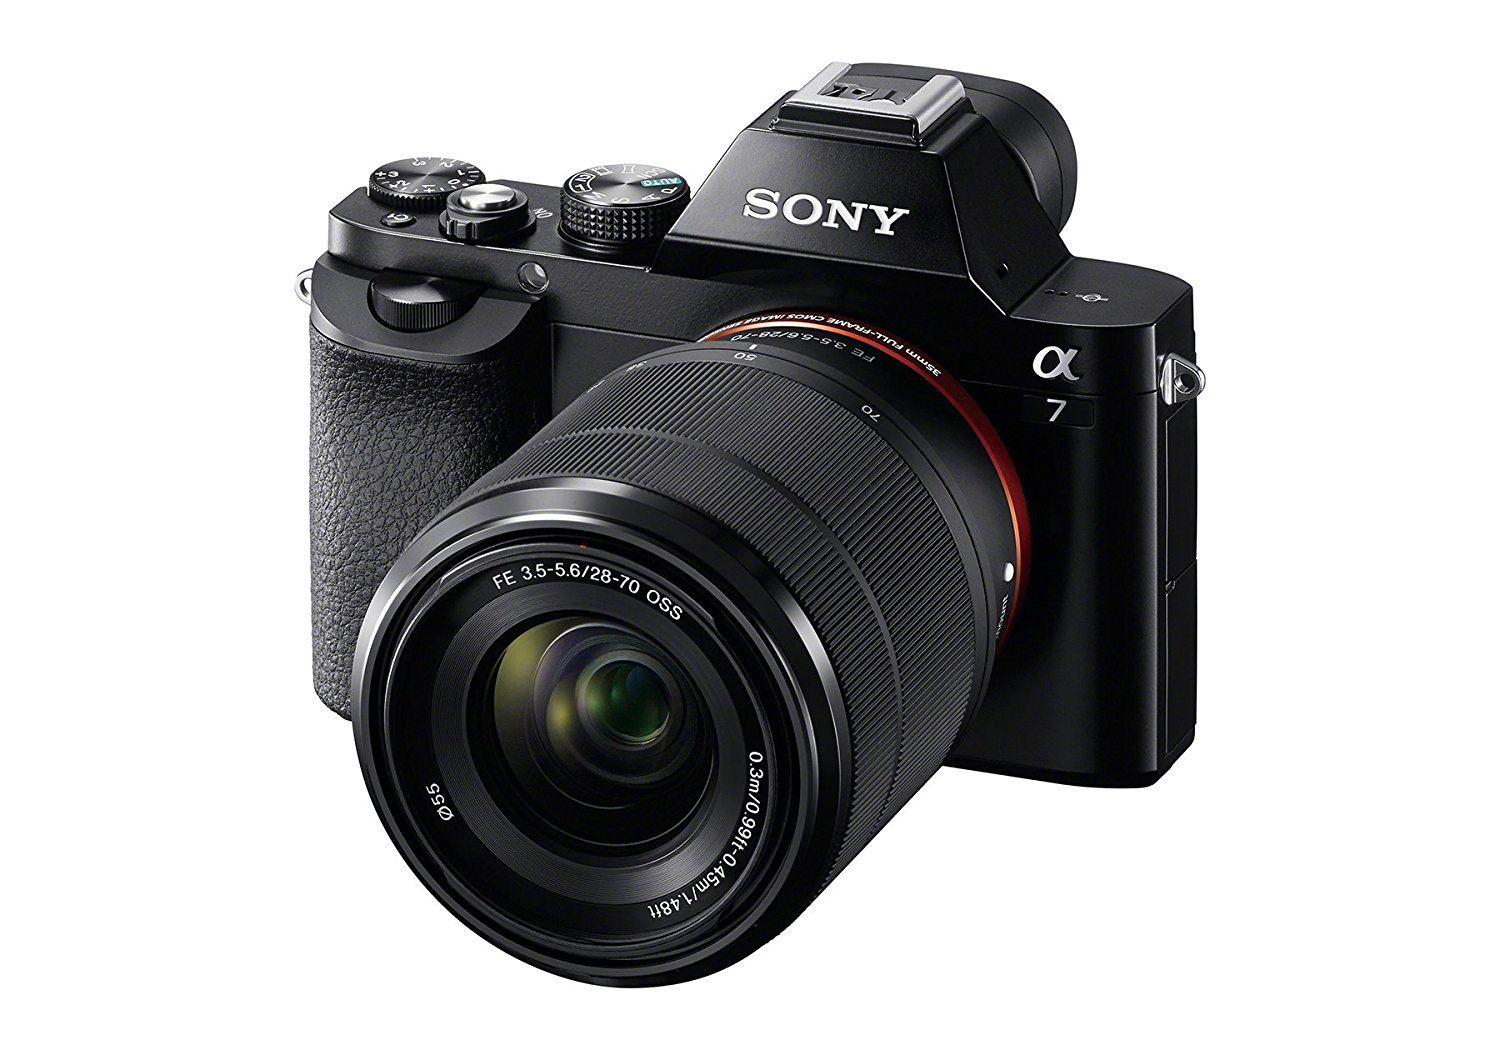 sony alpha a7 with lens image